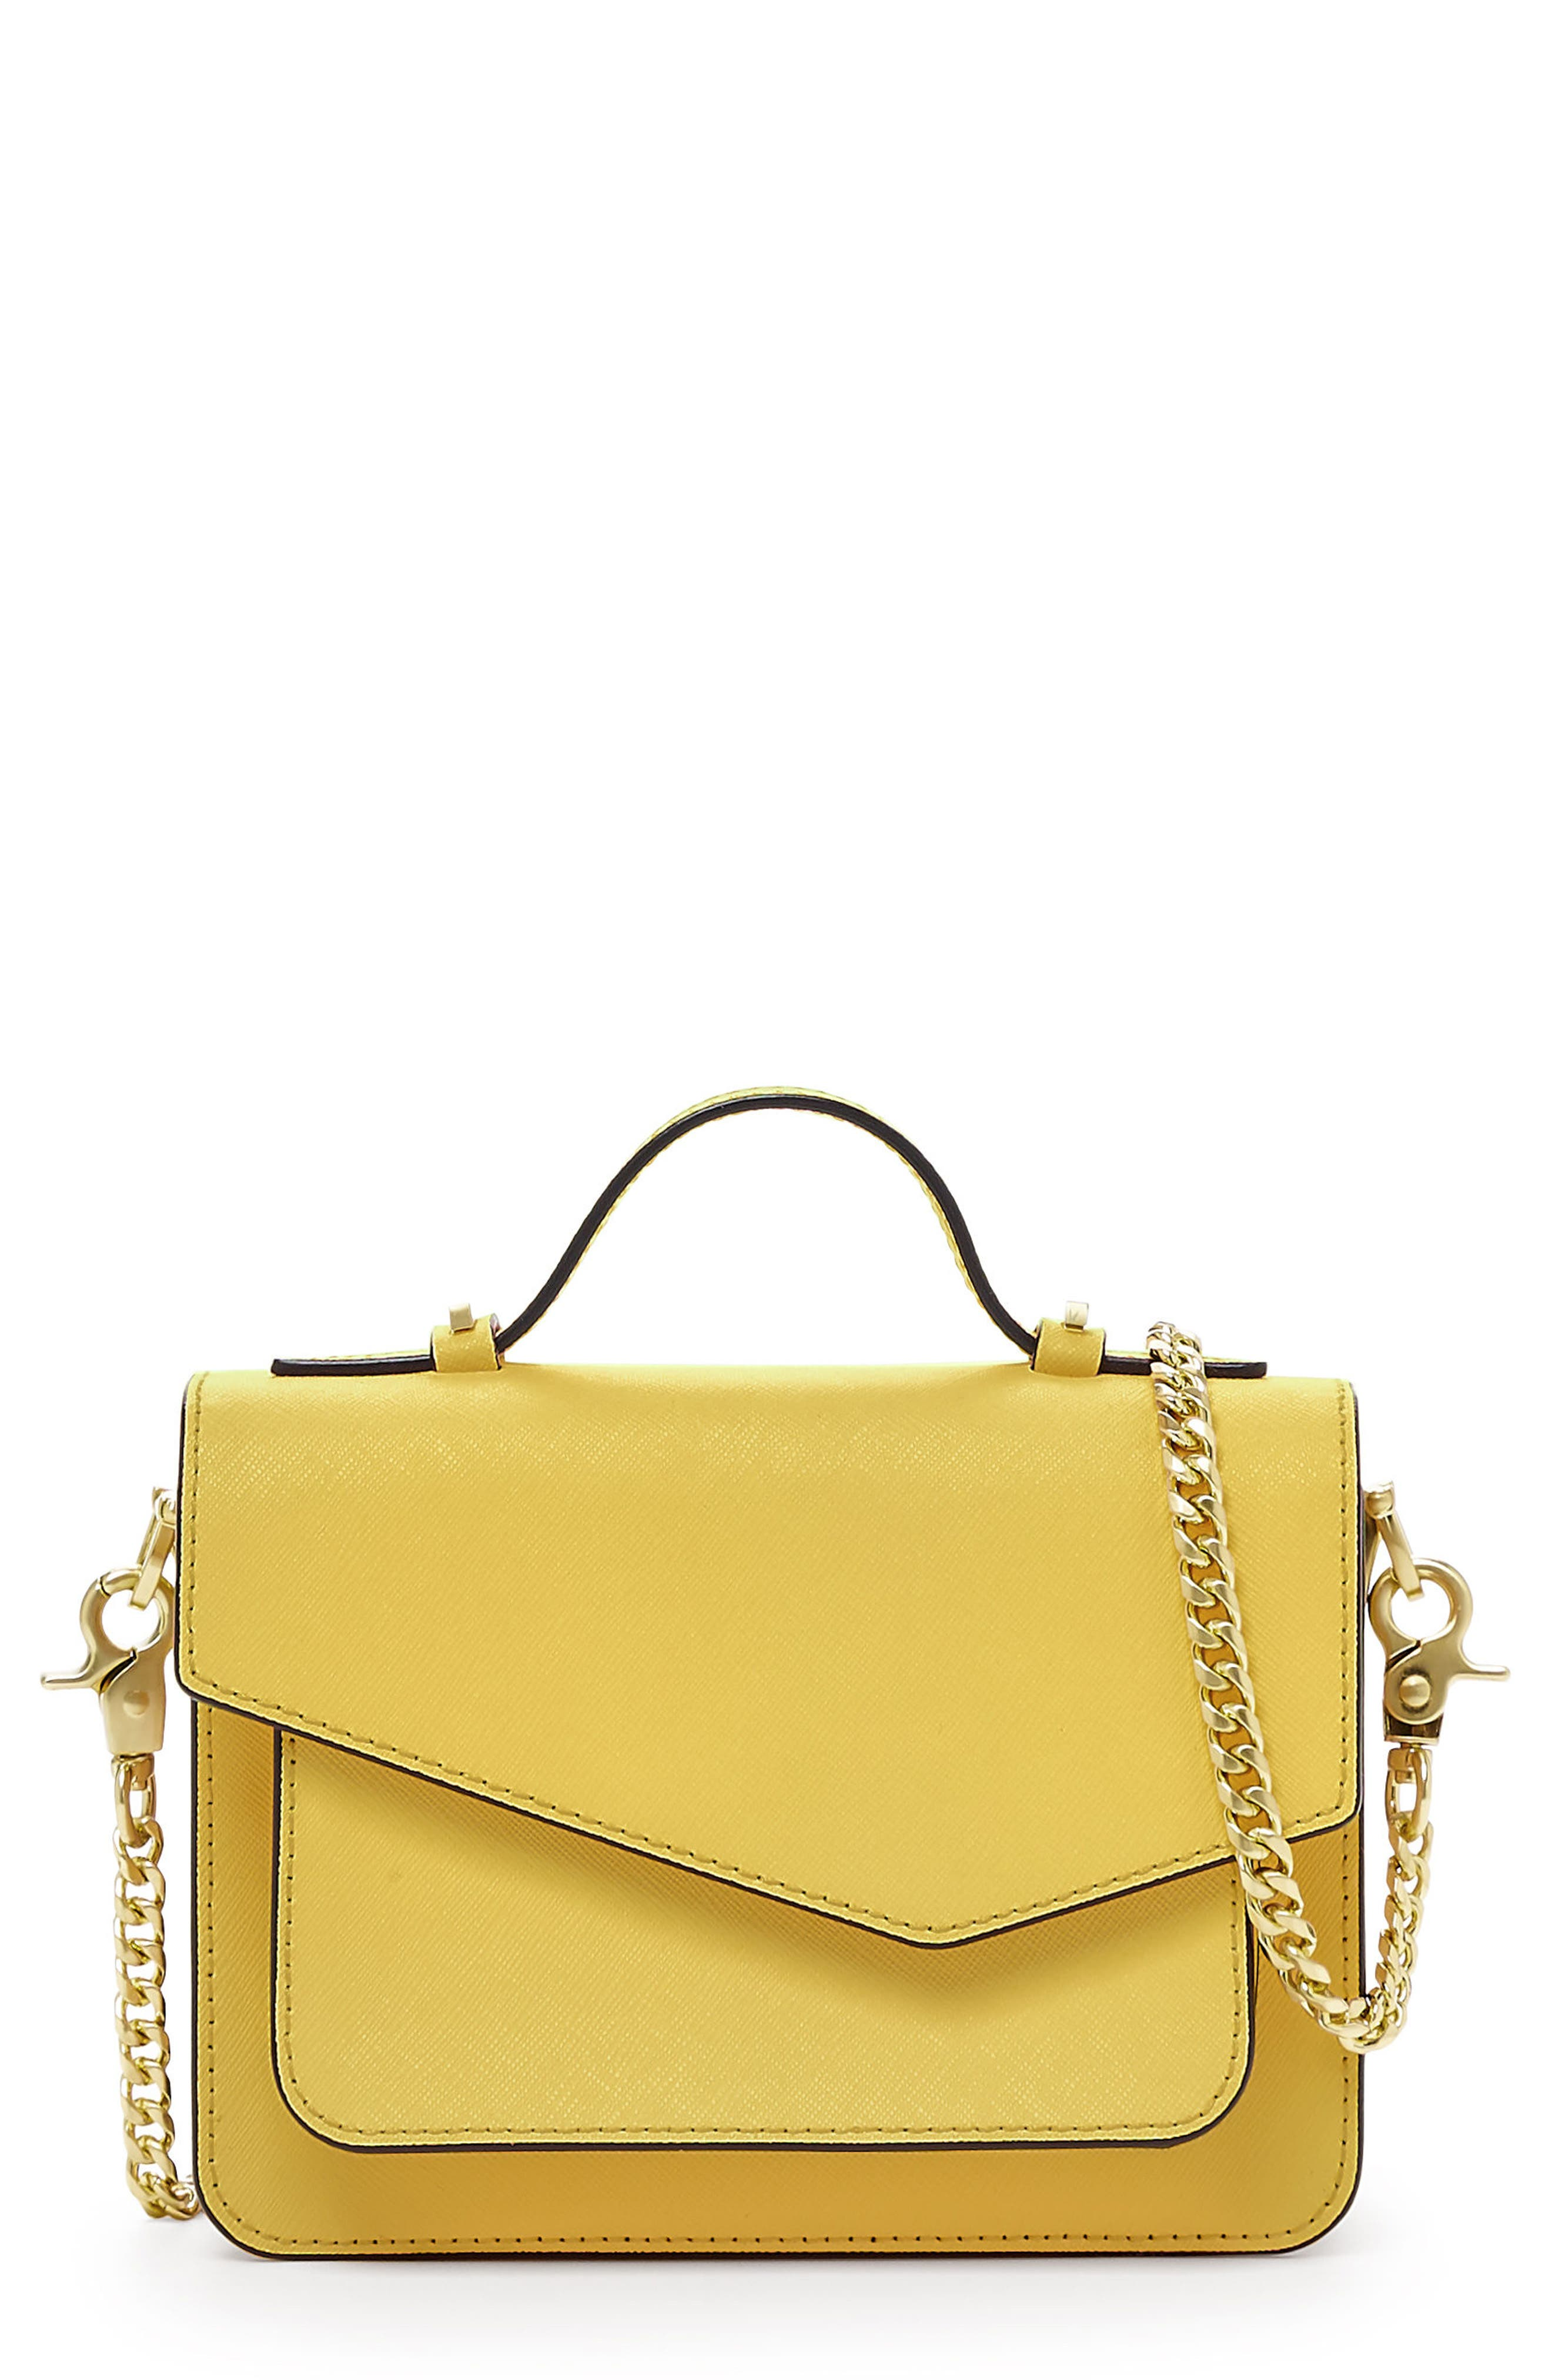 Main Image - Botkier Mini Cobble Hill Calfskin Leather Crossbody Bag